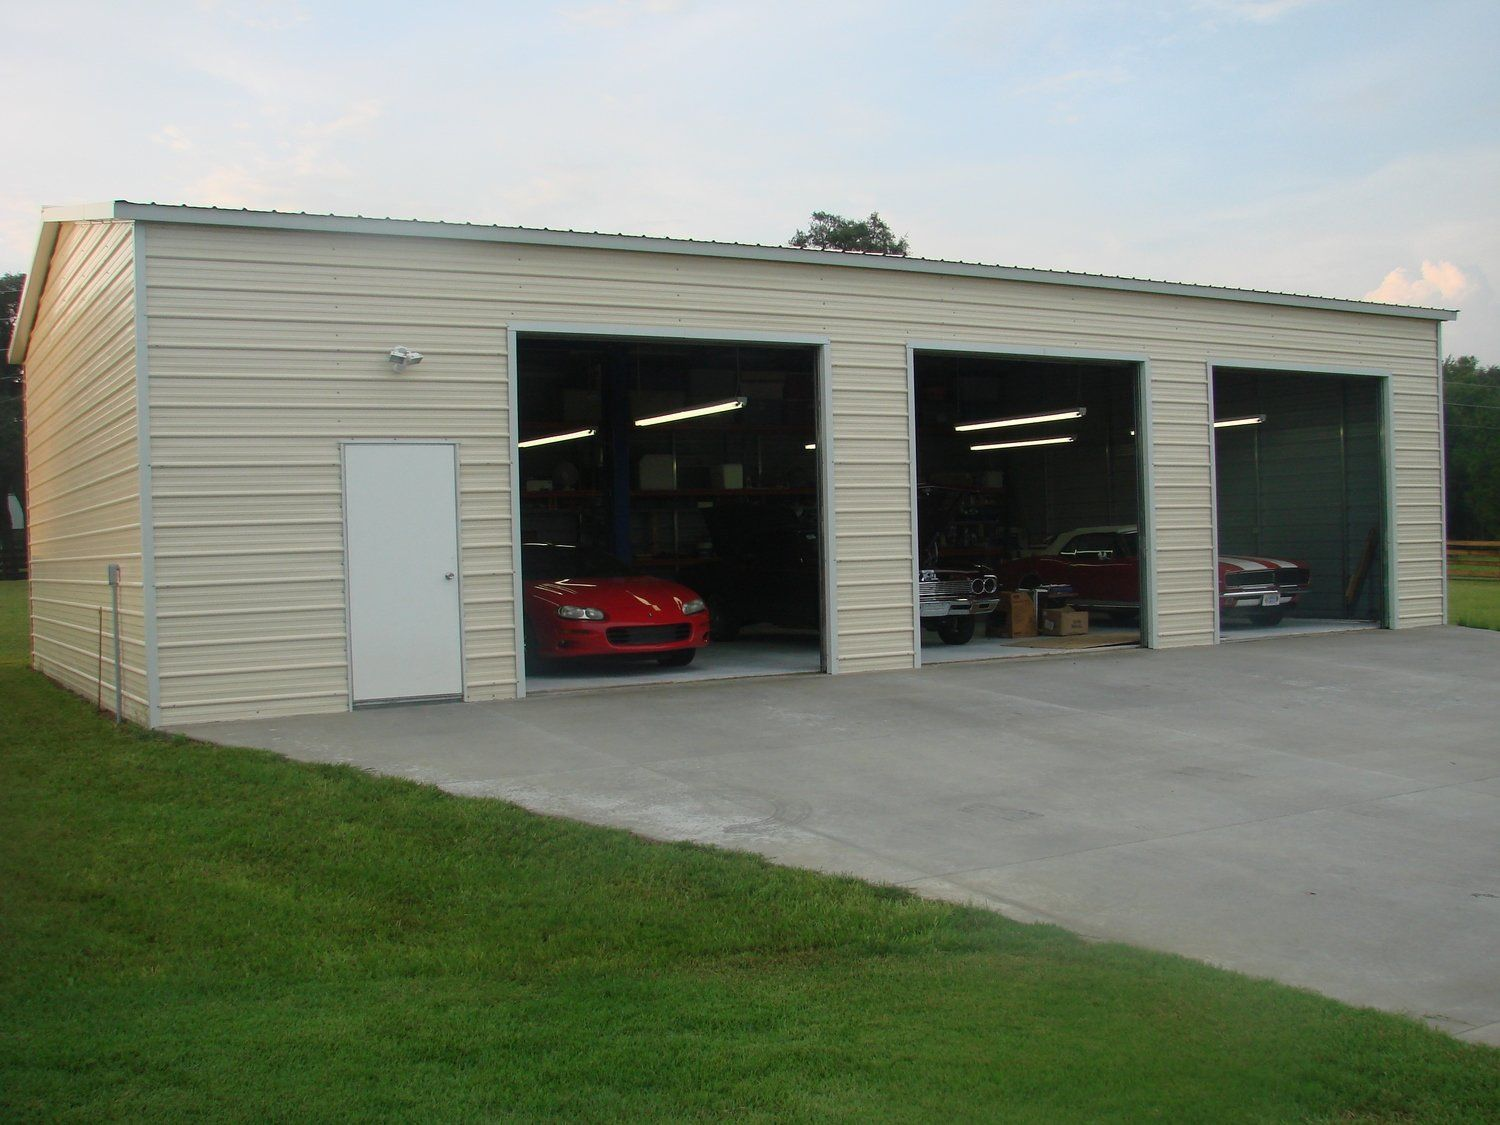 30 X 40 X 12 Workshop With Two 10 X 10 Roll Up Doors And One Walk In Door 8211 Store 8211 Idea Garage Door Design Steel Garage Buildings Metal Buildings